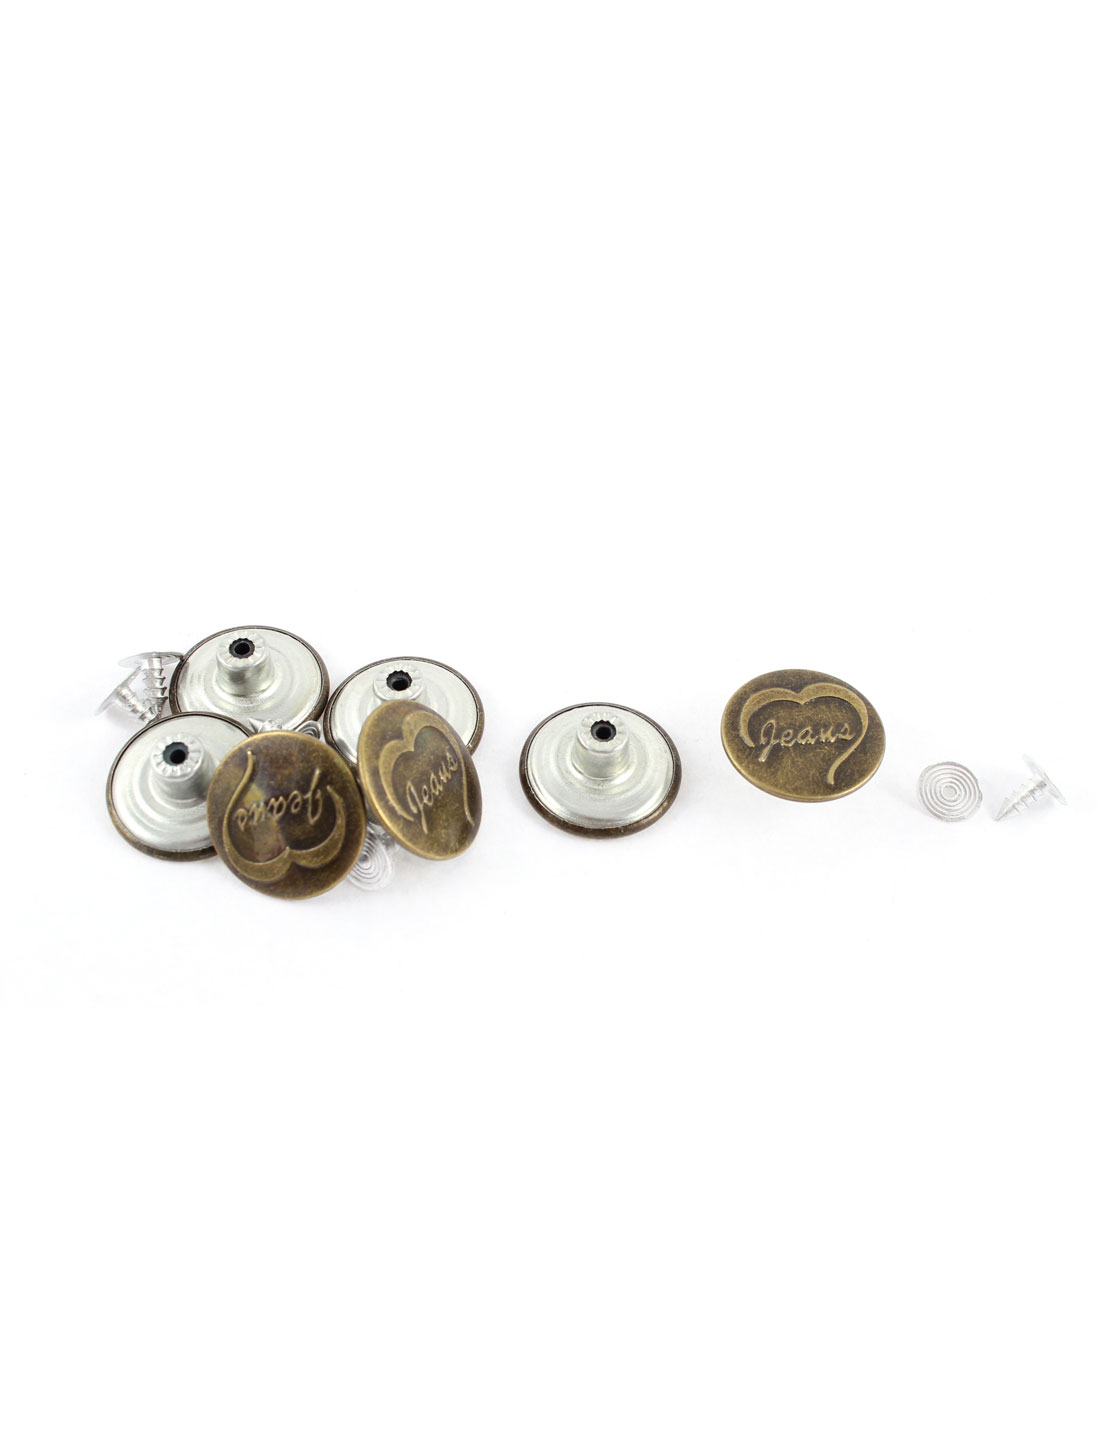 7 Pcs Metal Jacket Vintage Style Heart Printed Round Jean Buttons 20 x 8mm